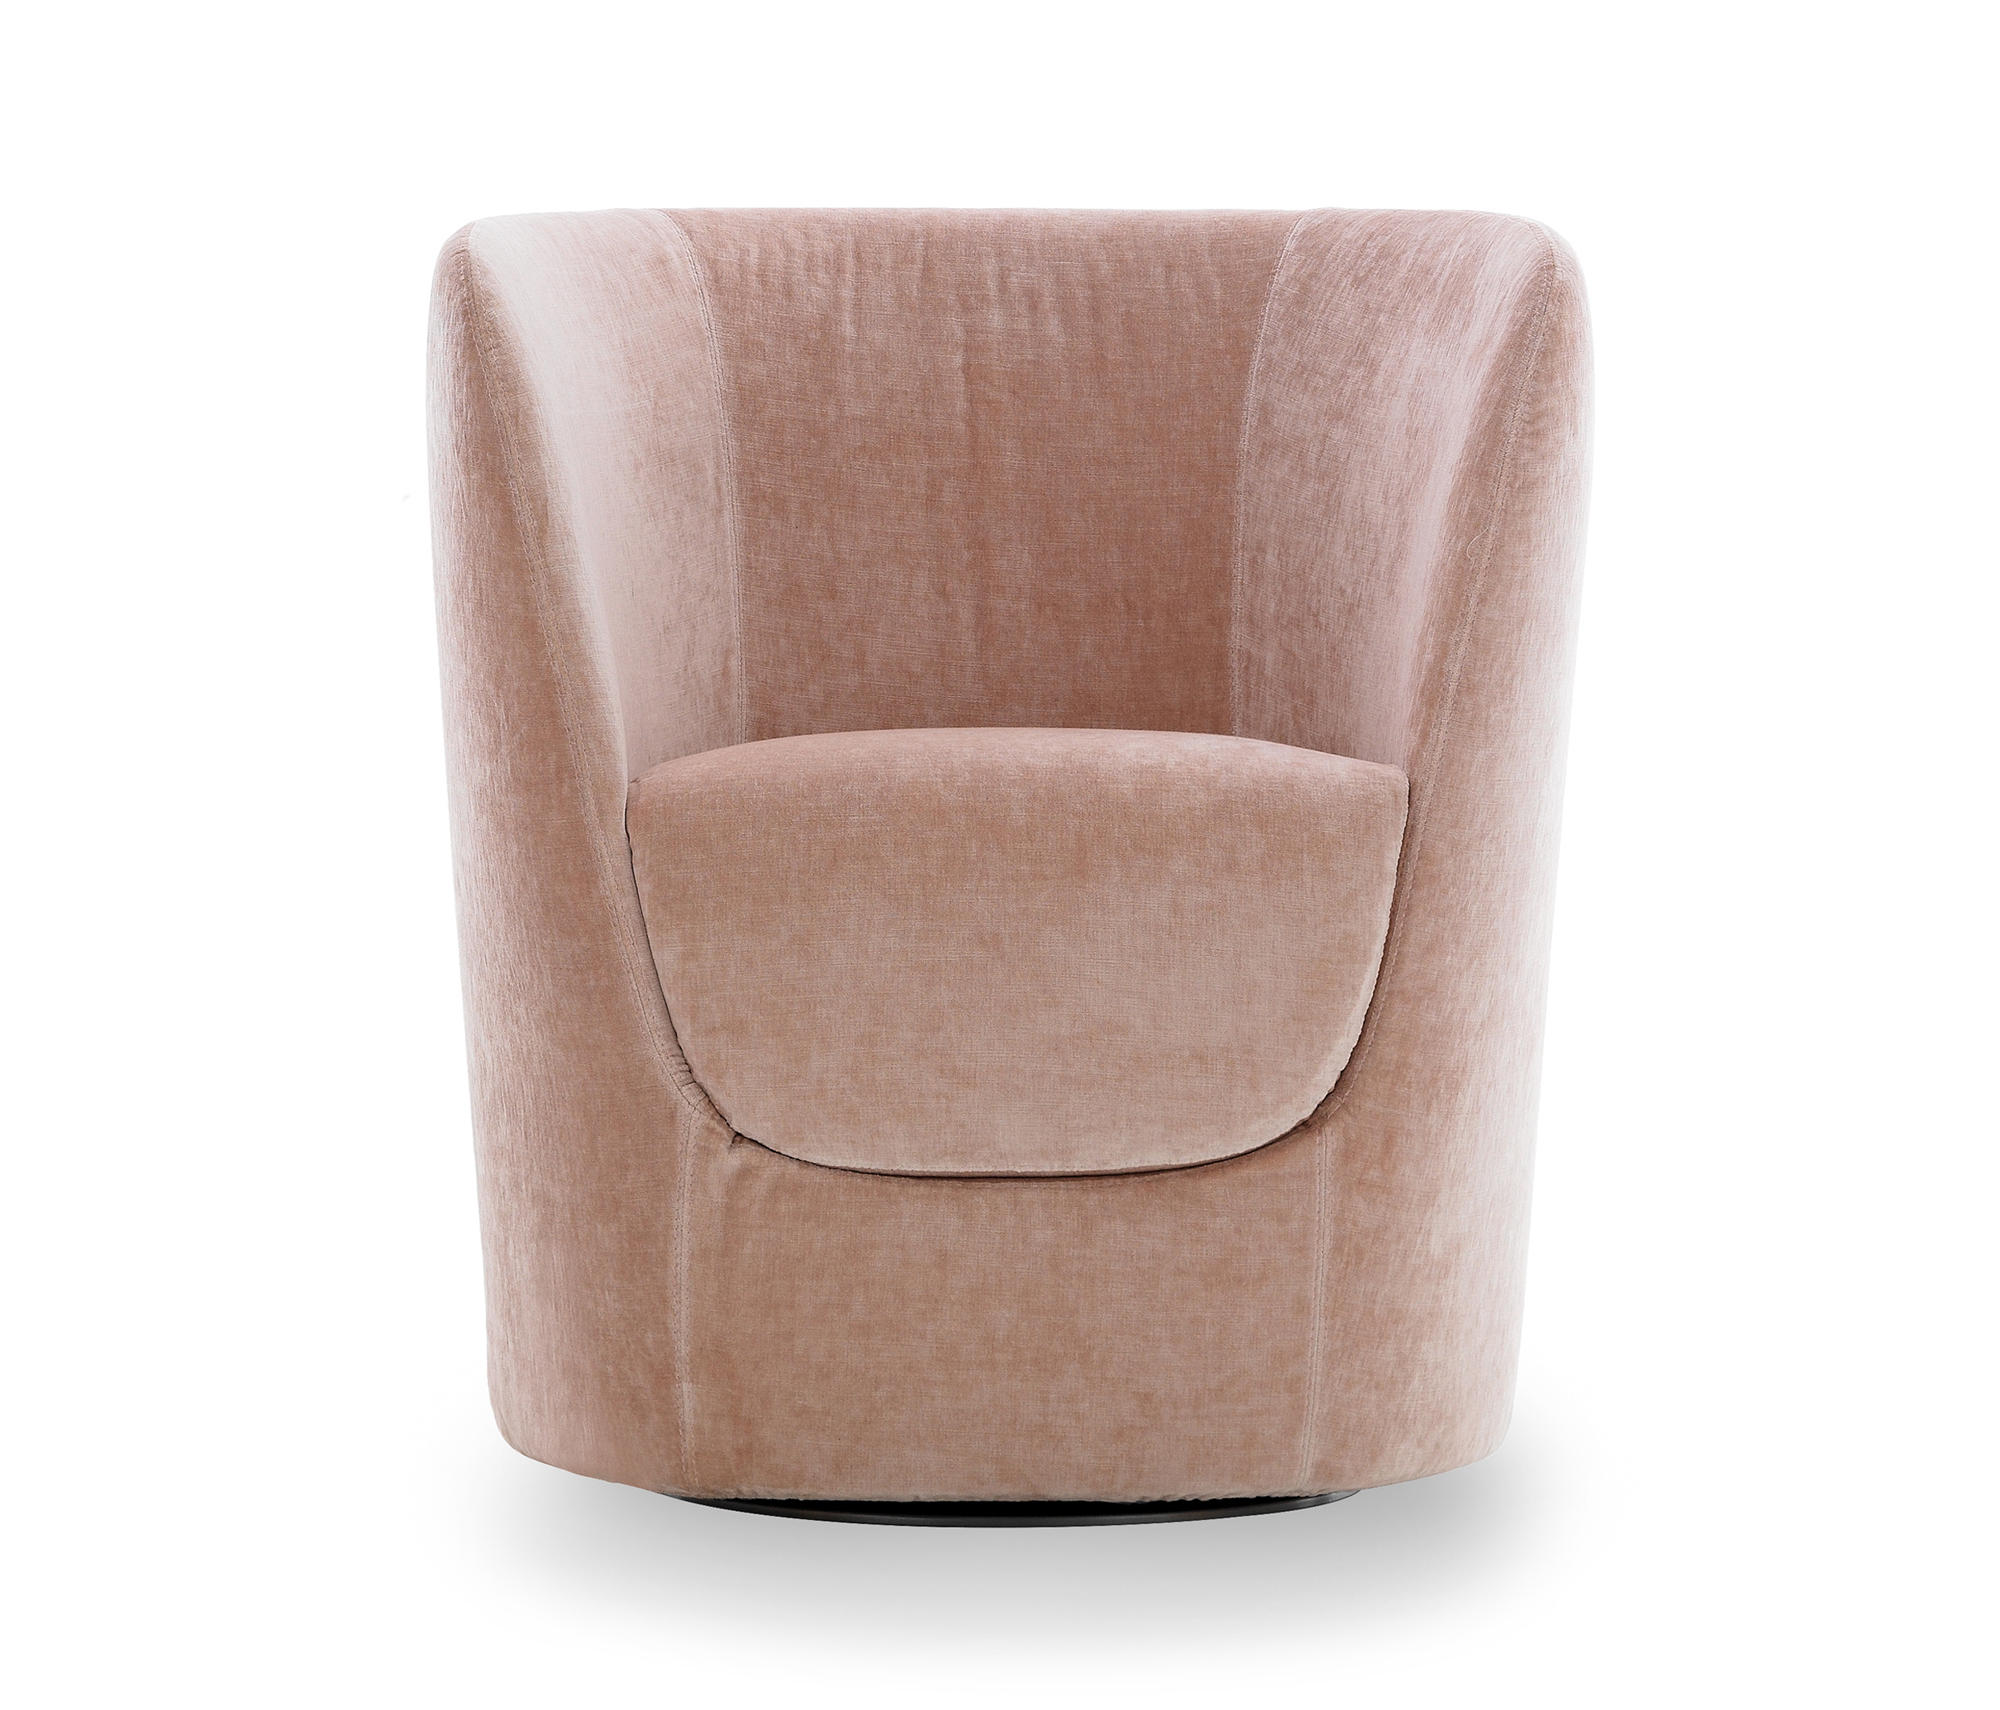 OPLÀ - Armchairs from Pianca | Architonic